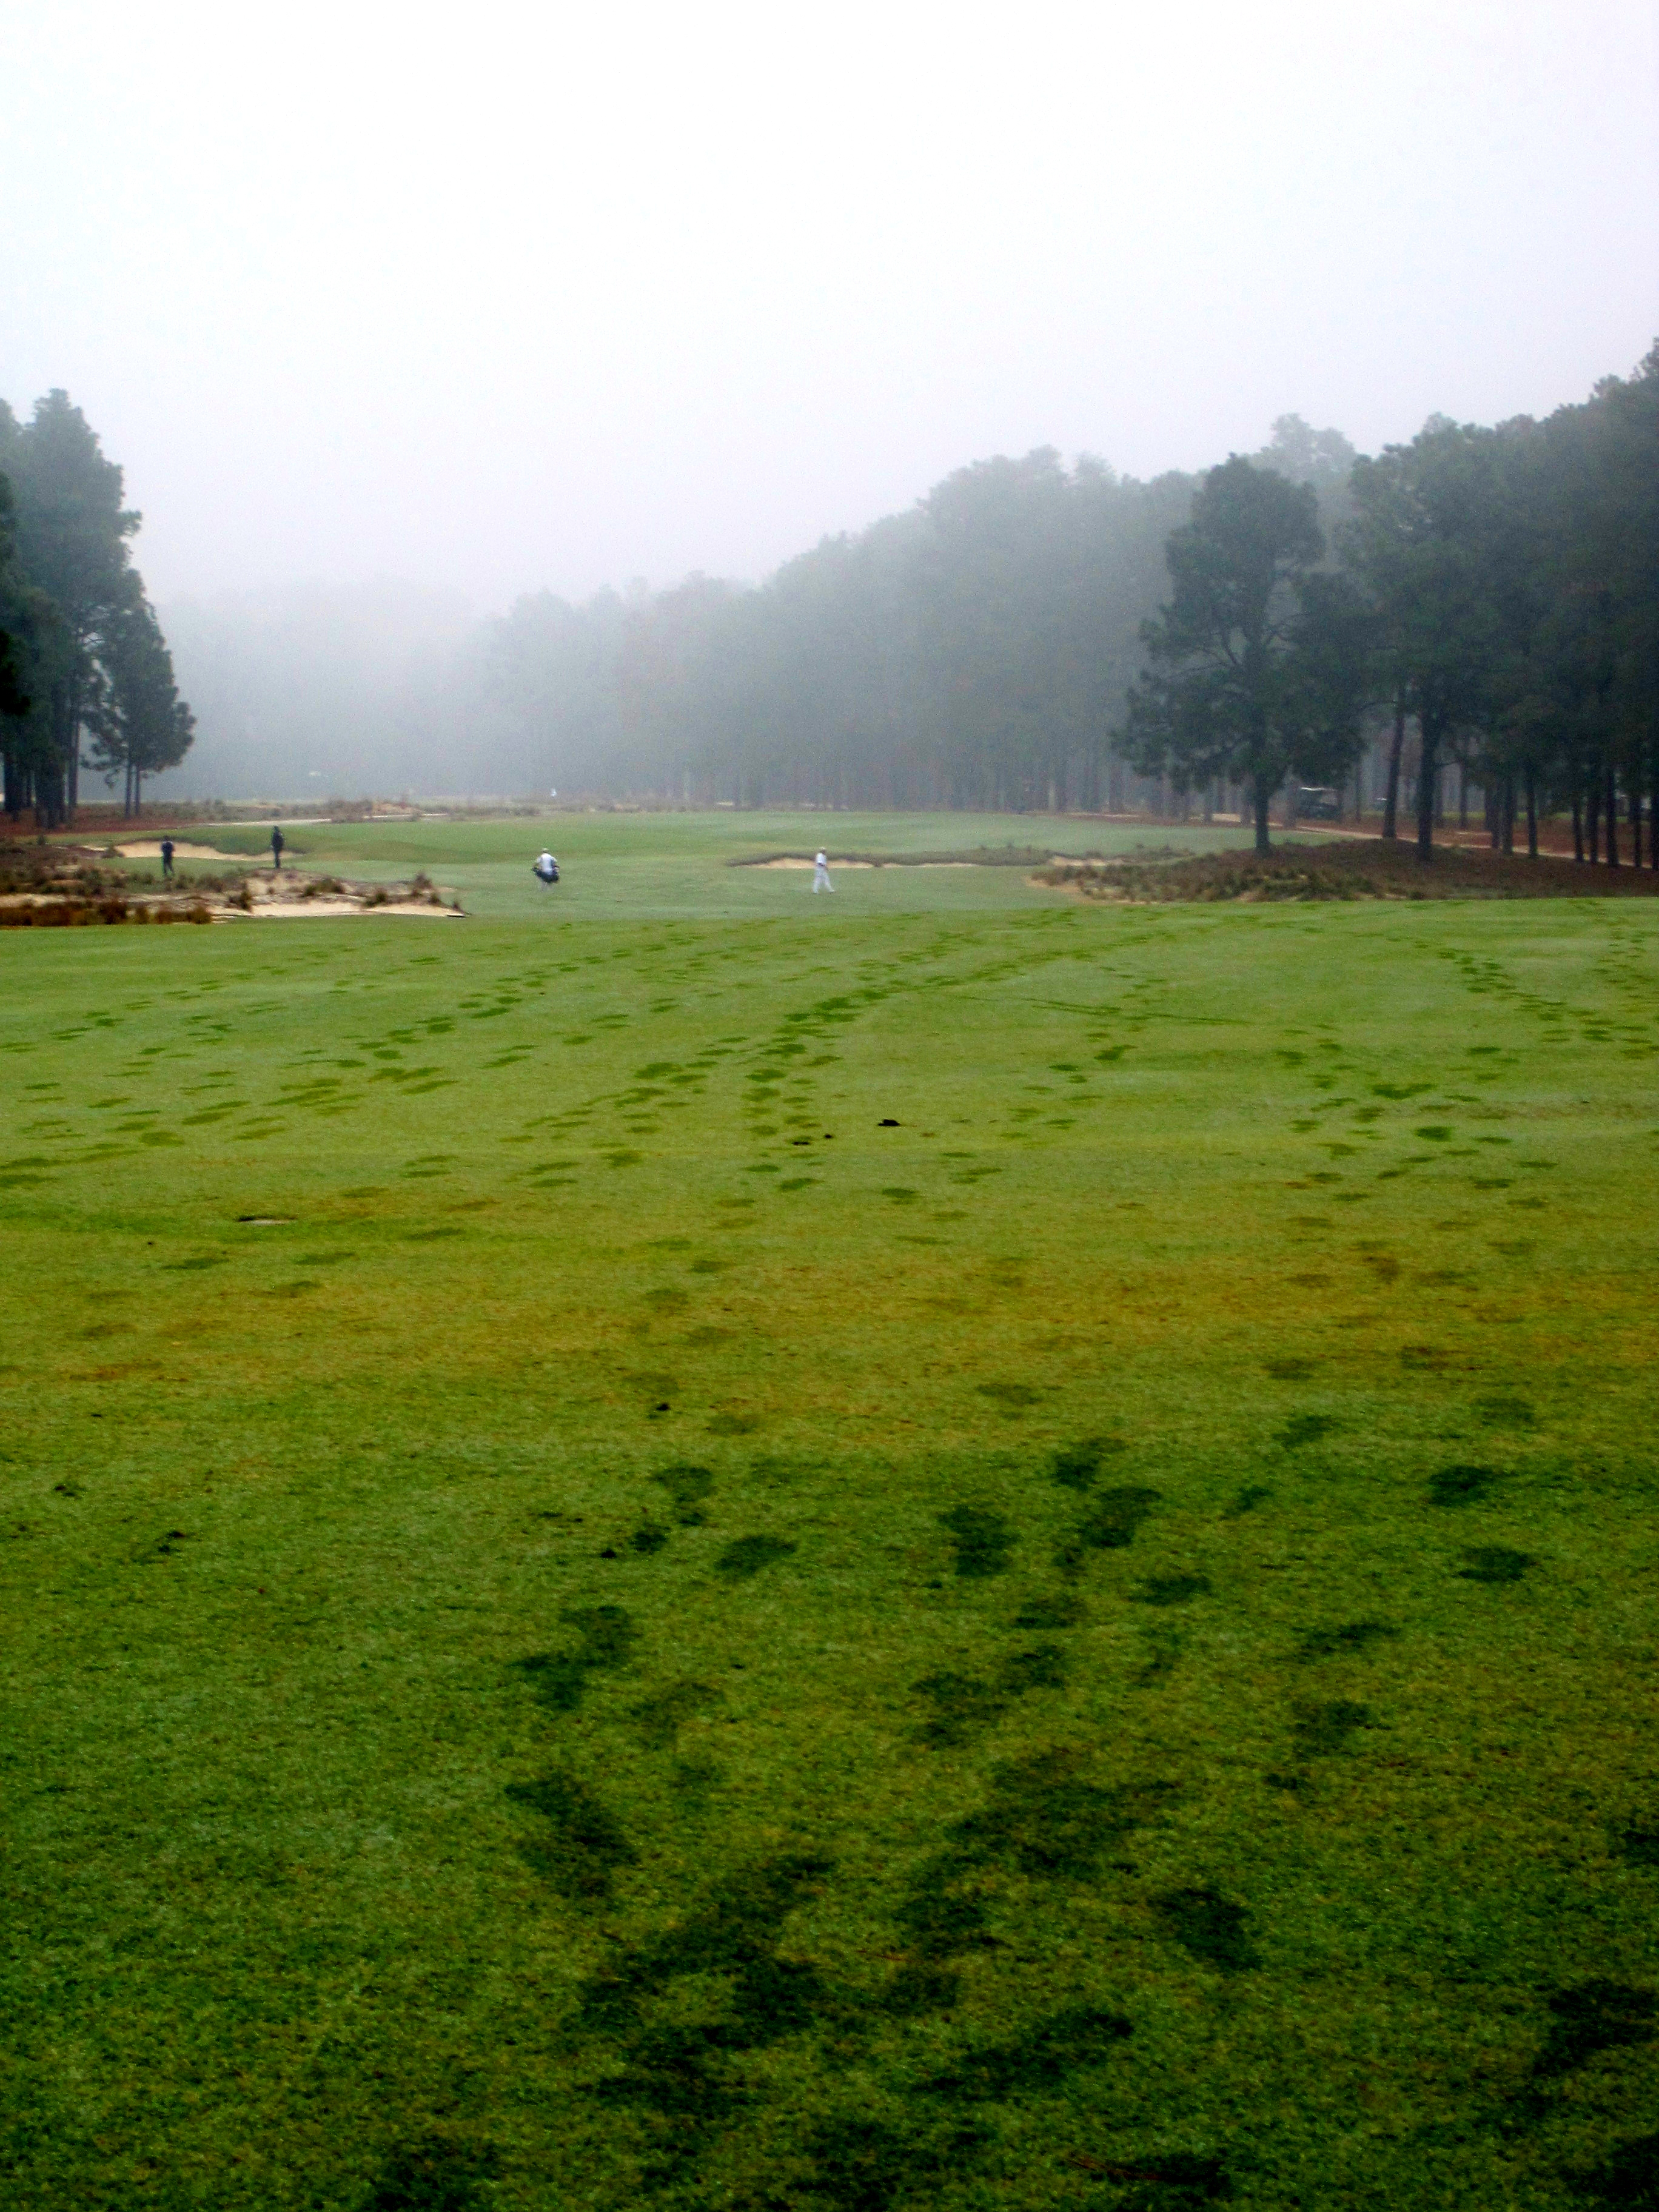 First Tee, Pinehurst No. 2